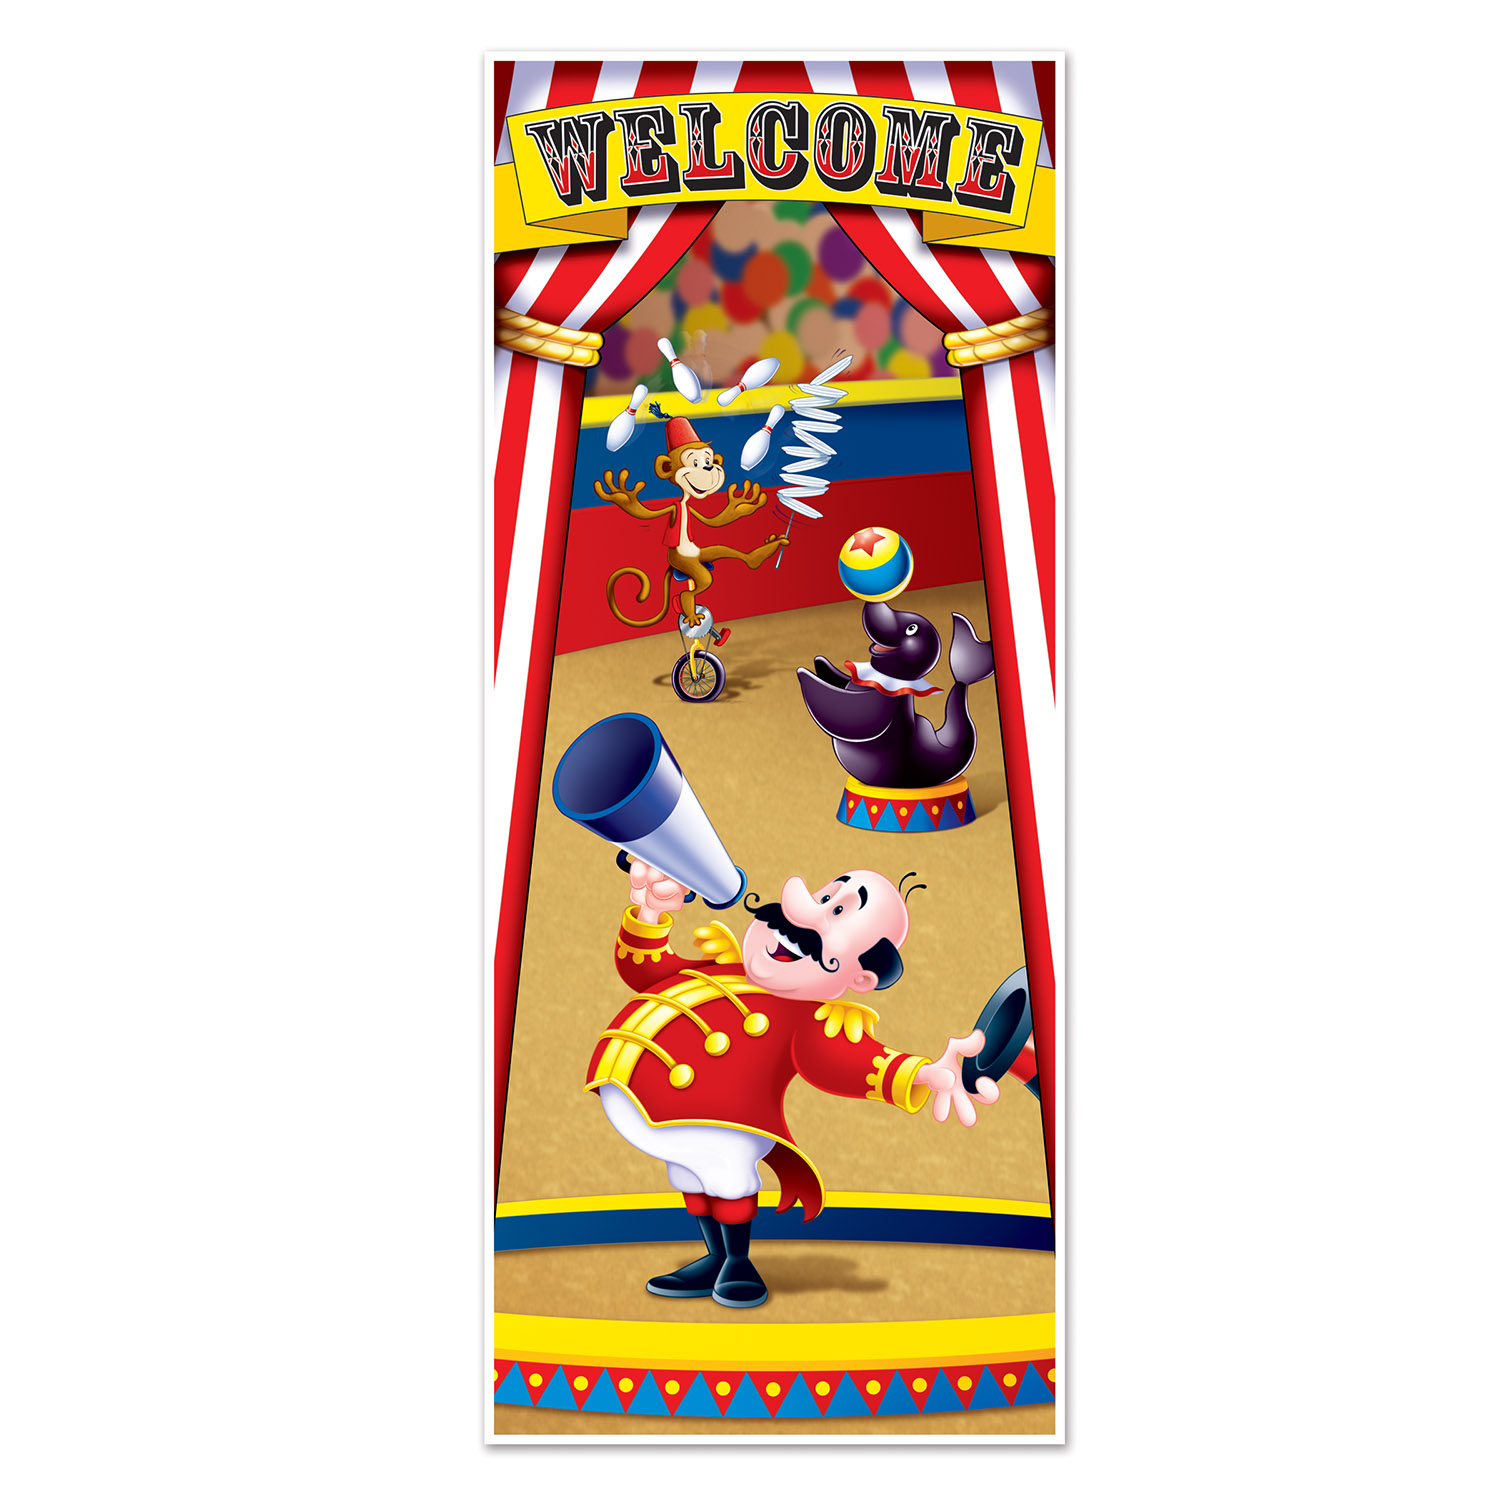 Circus Tent Door Cover (Pack of 12) Circus, tent, door, cover, new years eve, birthday, decoration, wholesale, inexpensive, bulk